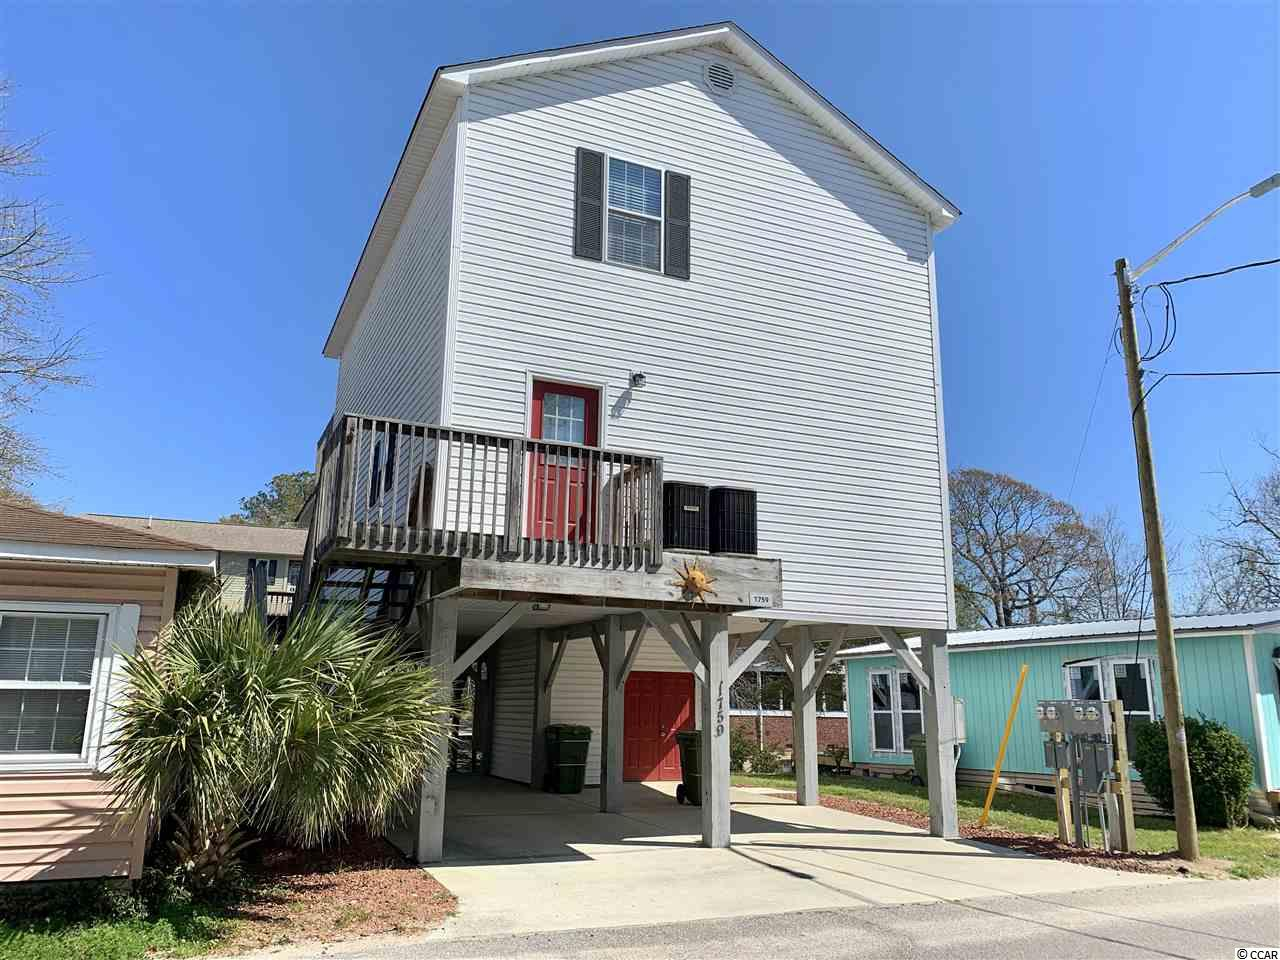 6001 - 1759 S Kings Hwy., Myrtle Beach, South Carolina